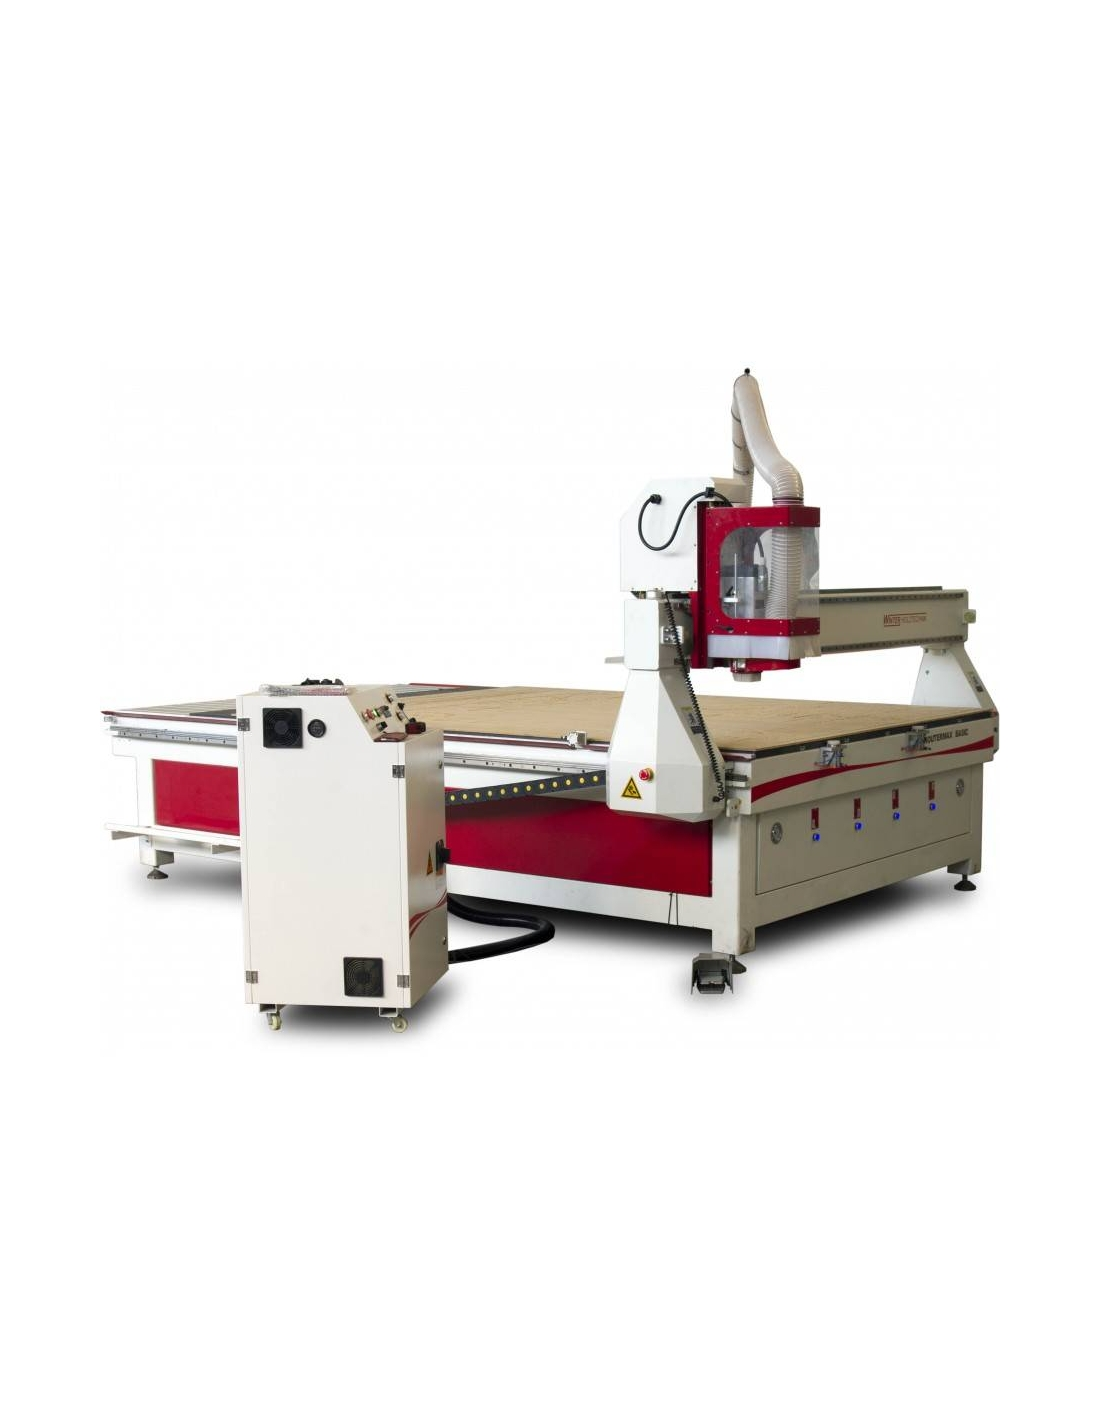 Router CNC Winter RouterMax Basic - Comfort 1530 Deluxe